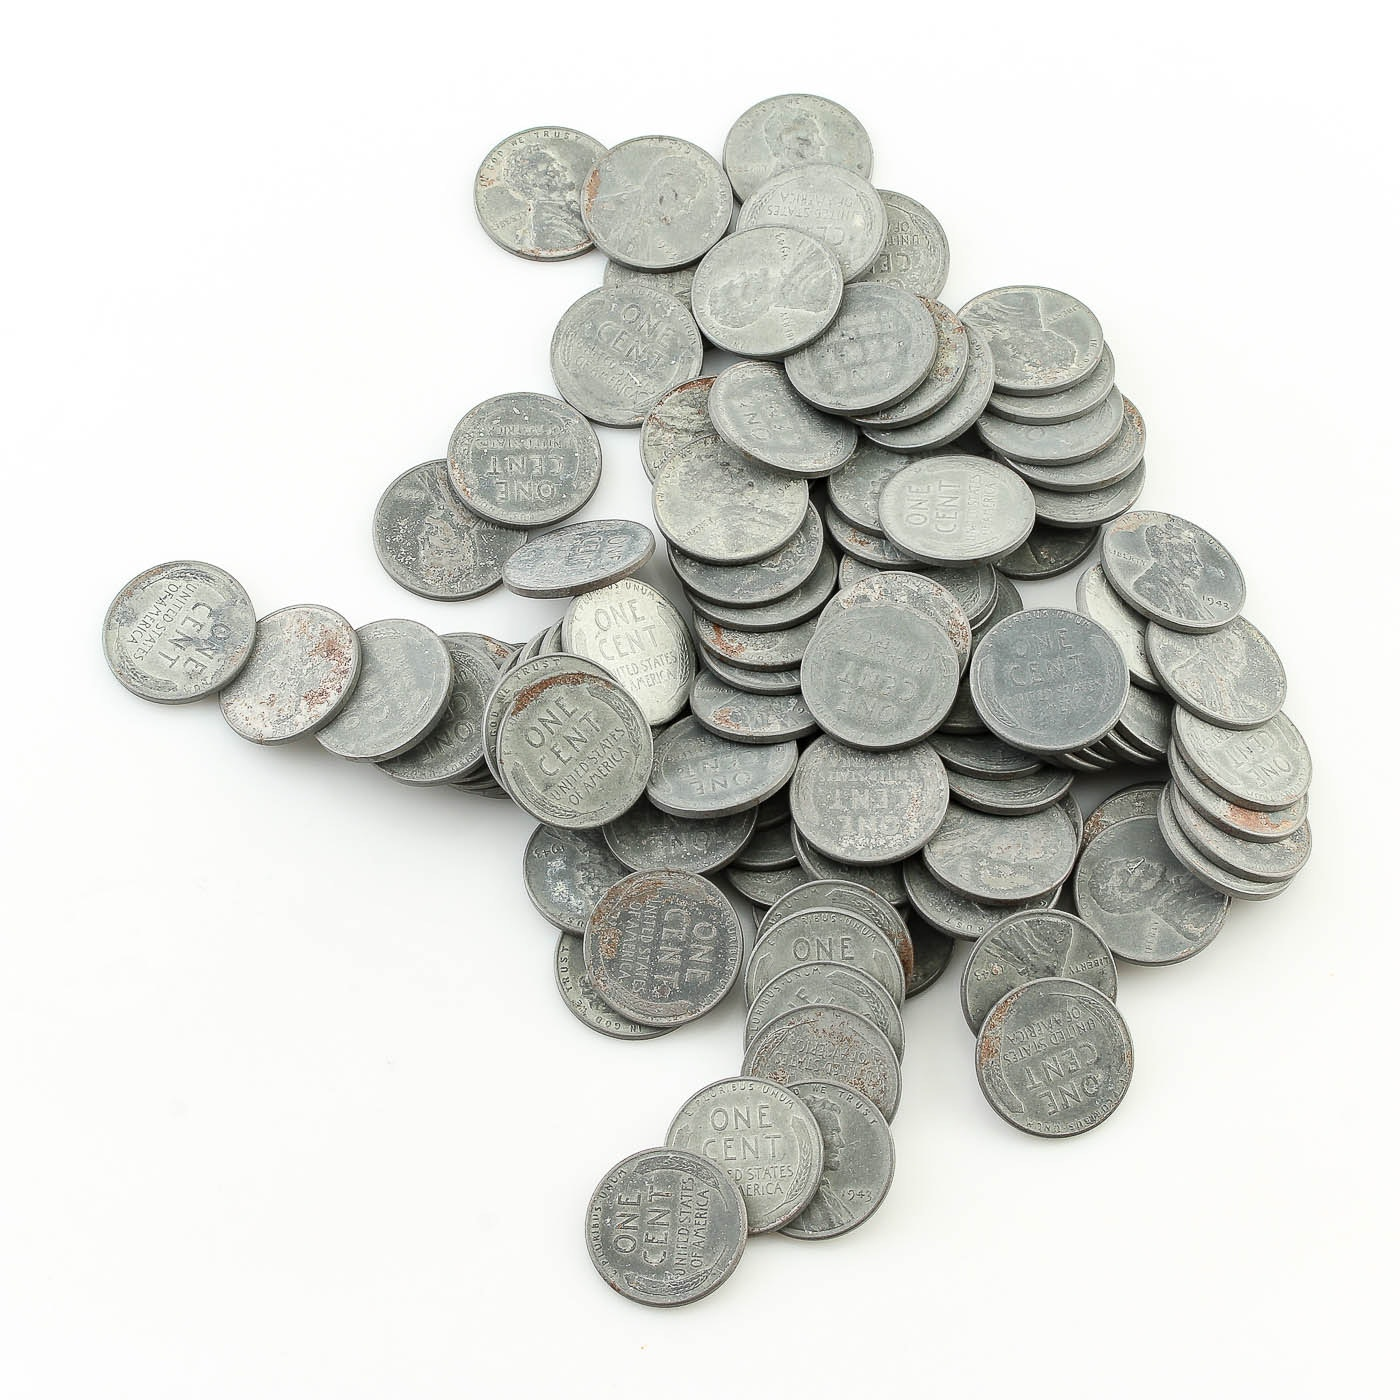 Collection of 1943 Steel Cents